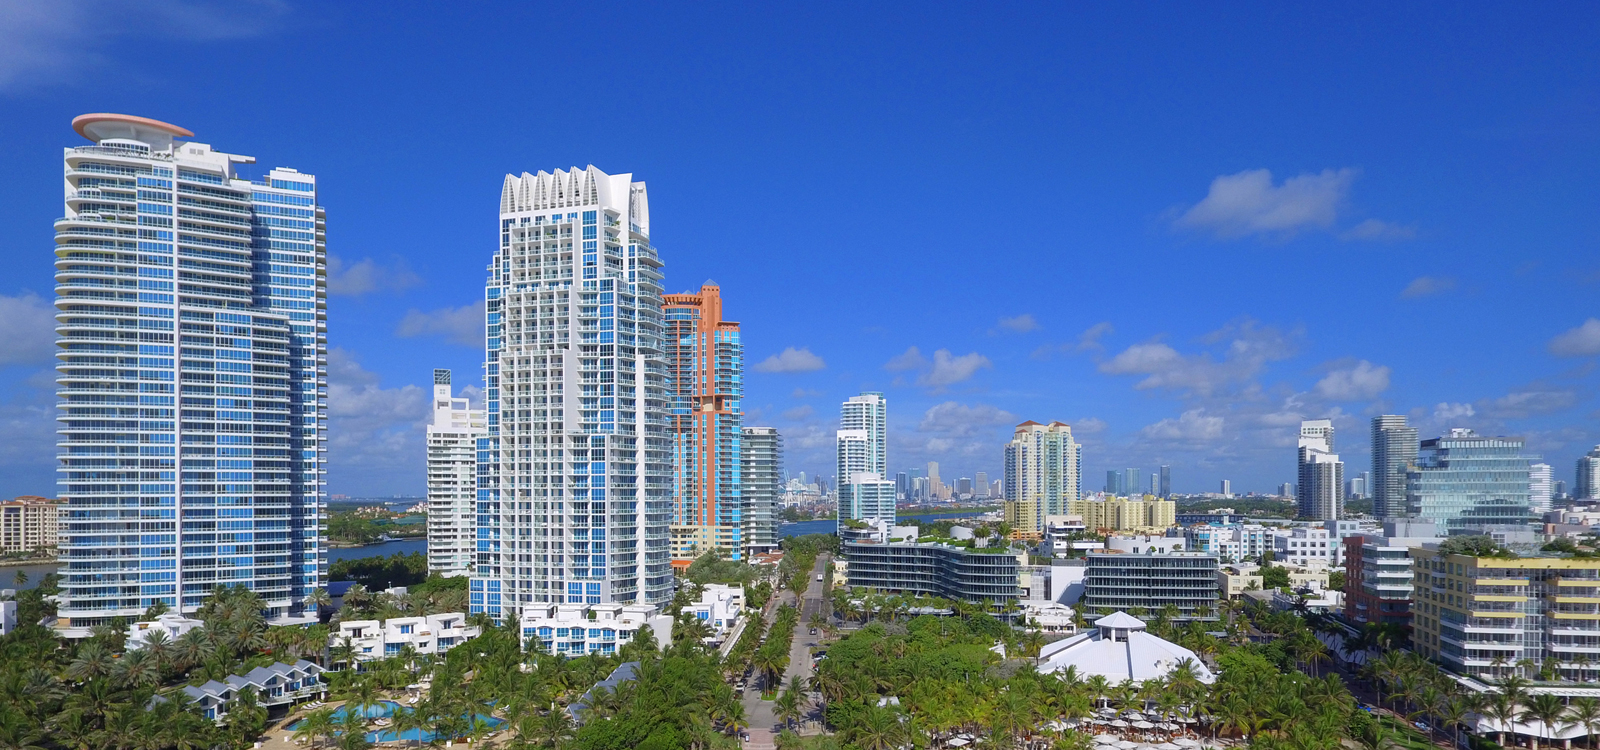 South Beach Hotels >> Majestic Hotel Best Rates At Our South Beach Hotel In Miami Florida